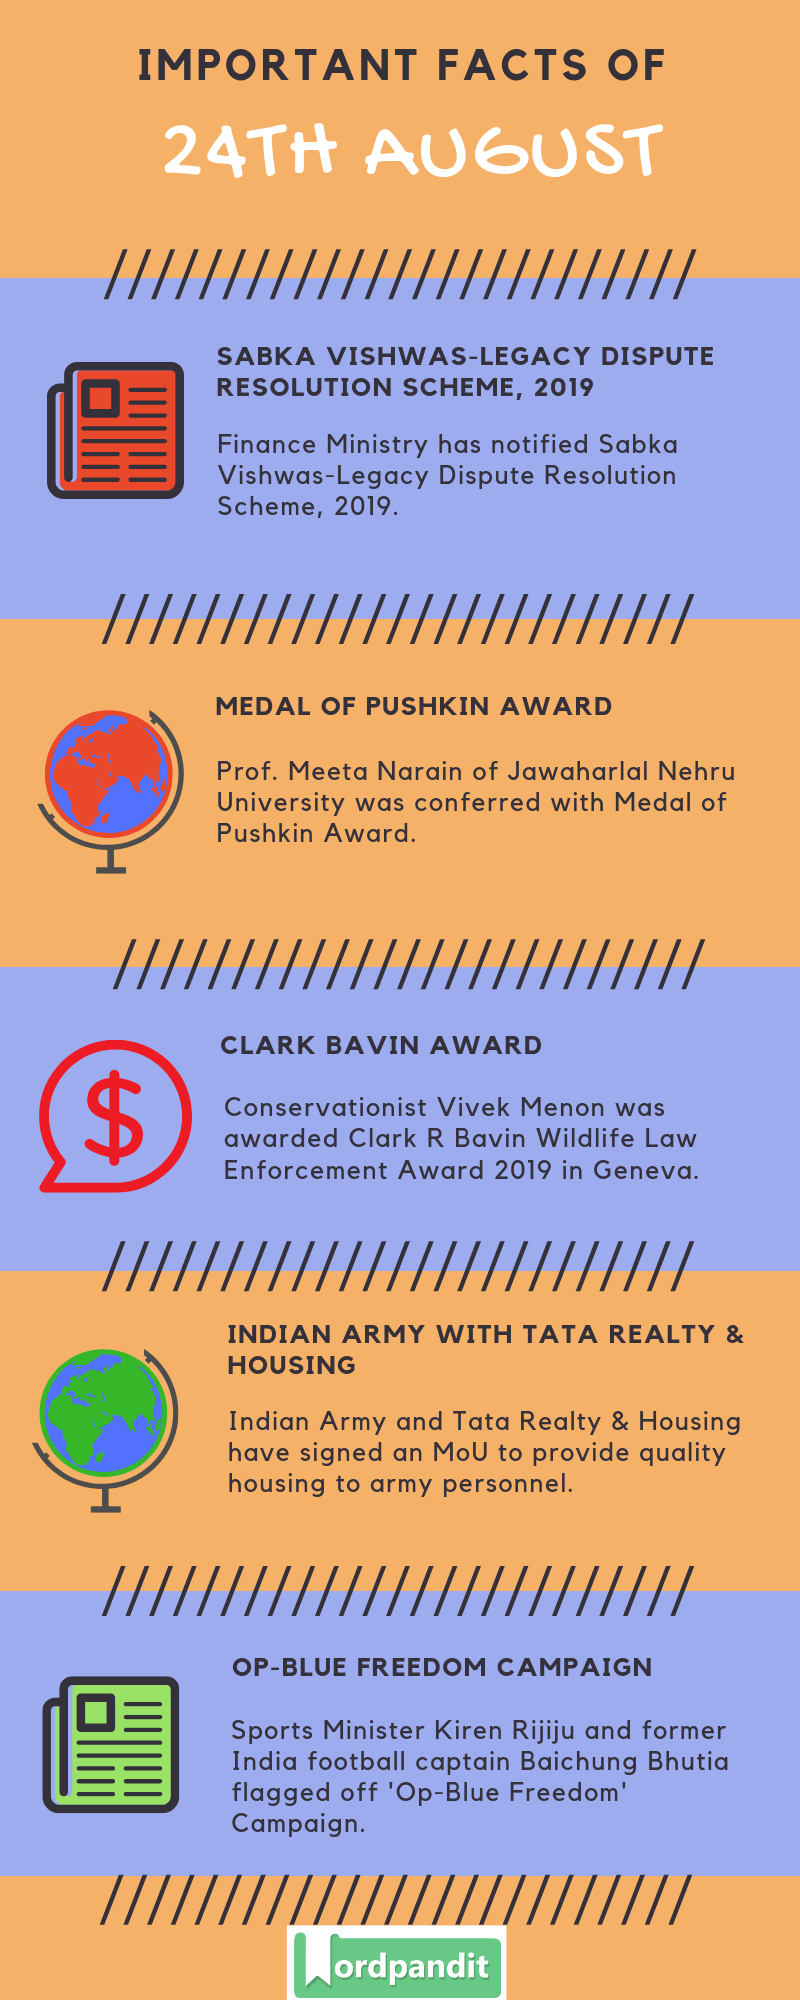 Daily Current Affairs 24 August 2019 Current Affairs Quiz 24 August 2019 Current Affairs Infographic